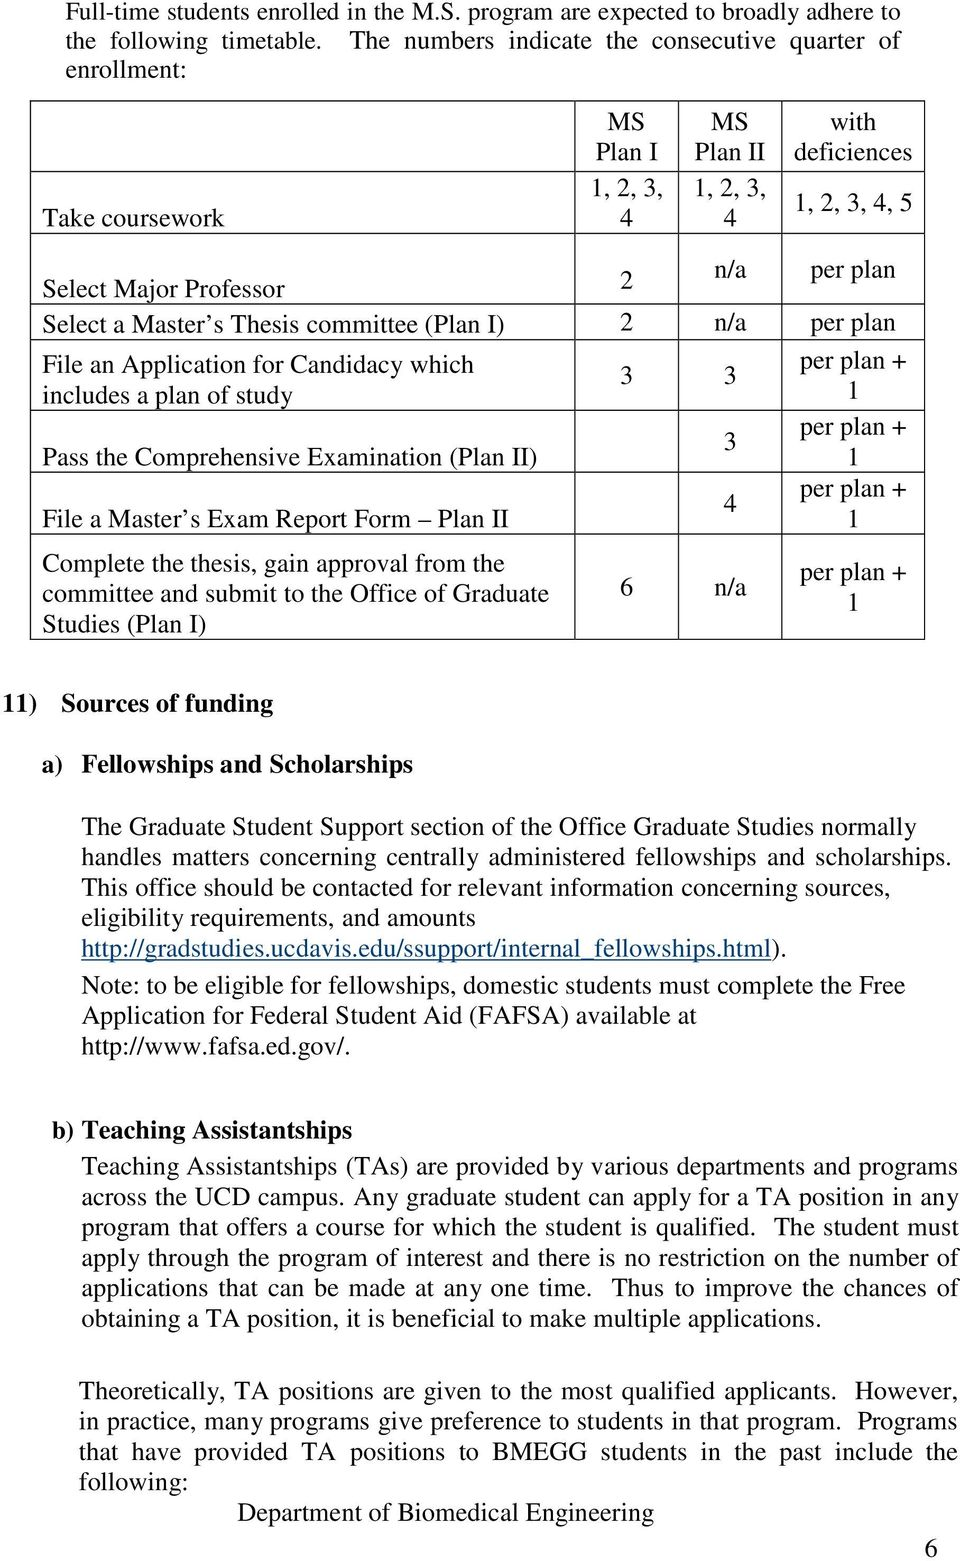 Master s Thesis committee (Plan I) 2 n/a per plan File an Application for Candidacy which per plan + 3 3 includes a plan of study 1 per plan + 3 Pass the Comprehensive Examination (Plan II) 1 per